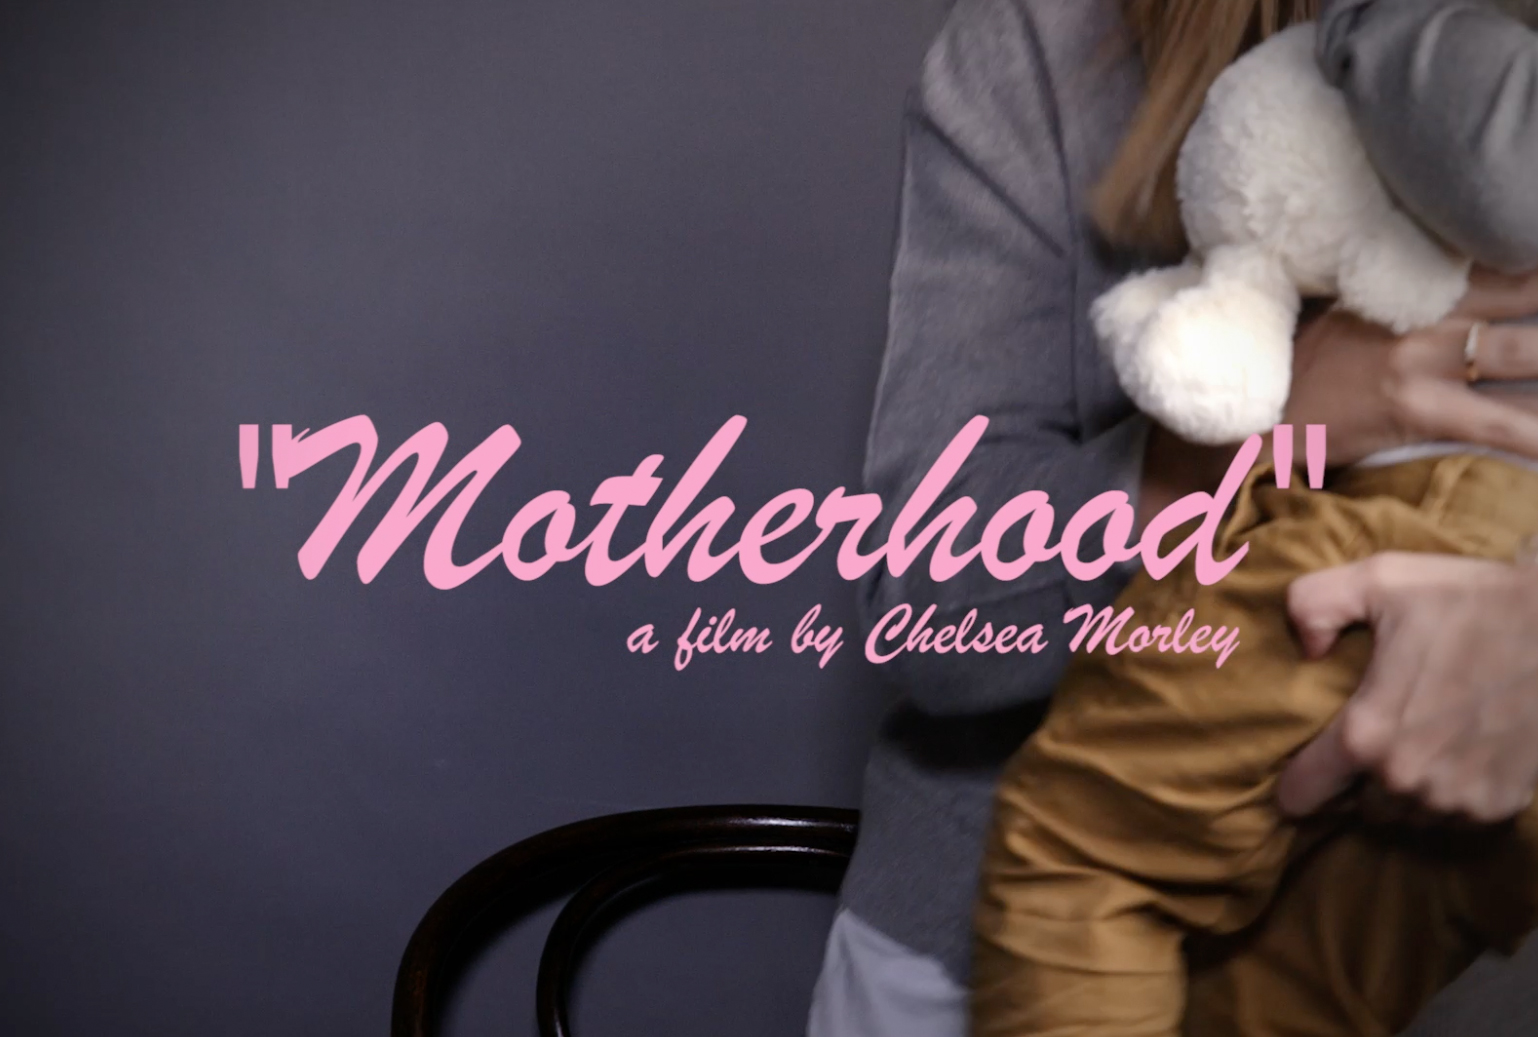 This Film About Motherhood Will Make You Laugh, Cry & More